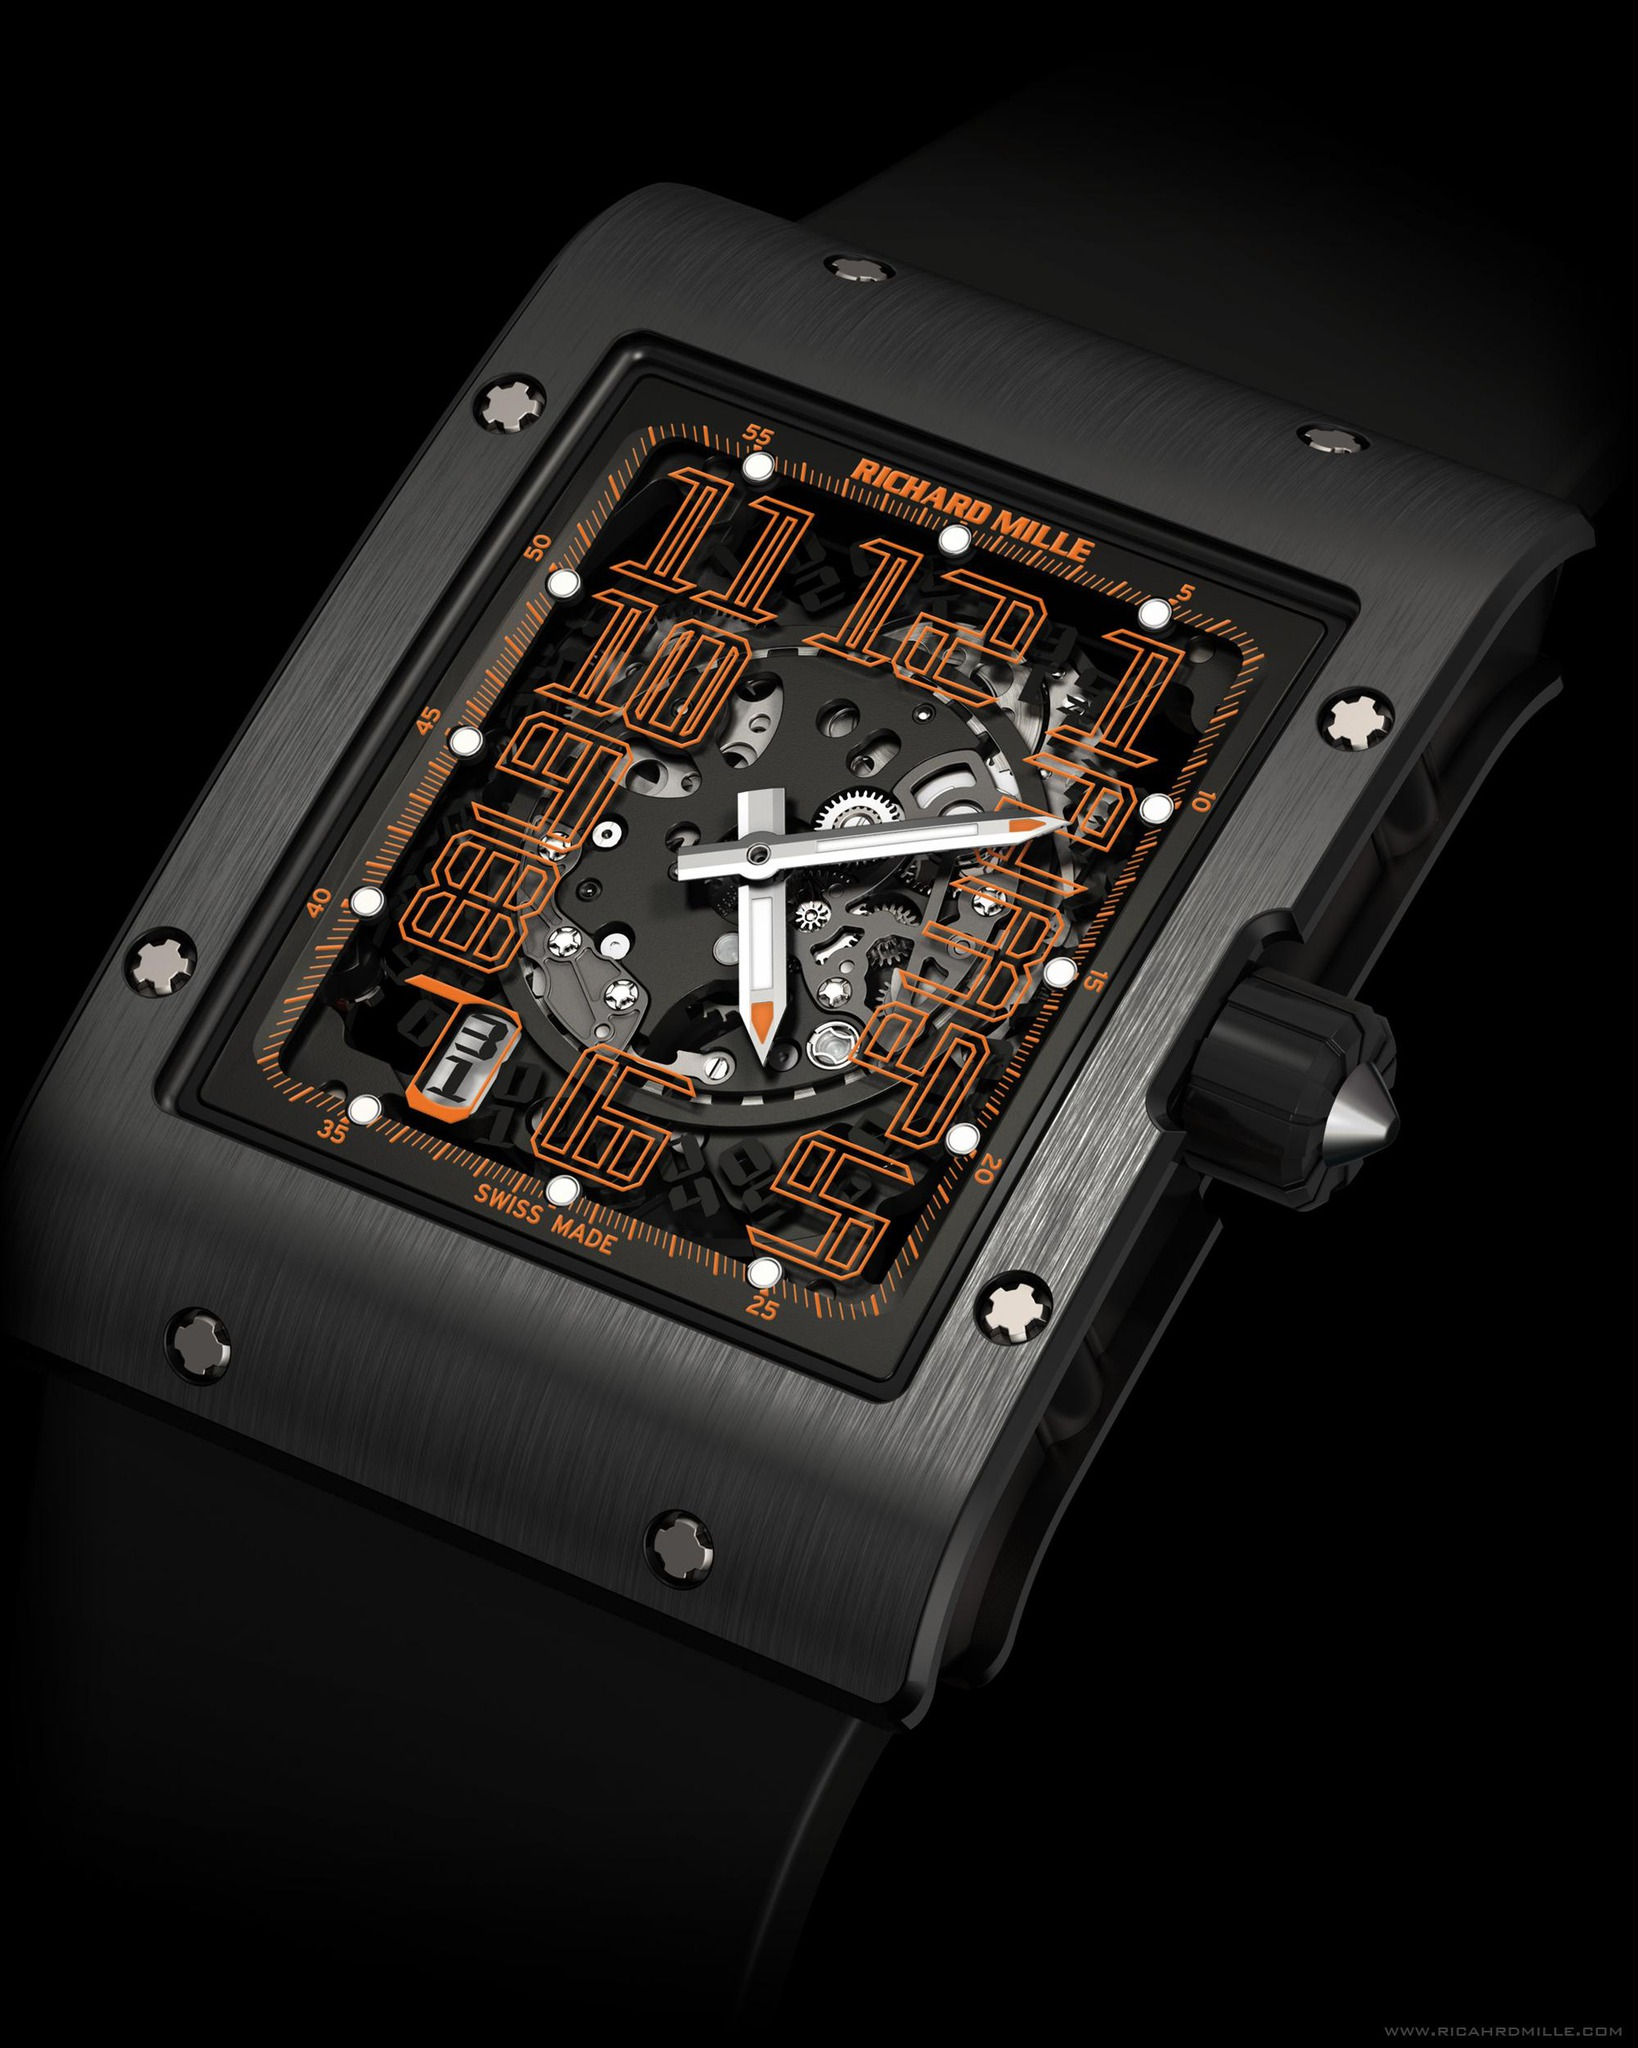 Replica Richard Mille RM 016 Automatic America Orange Black Titanium Watch